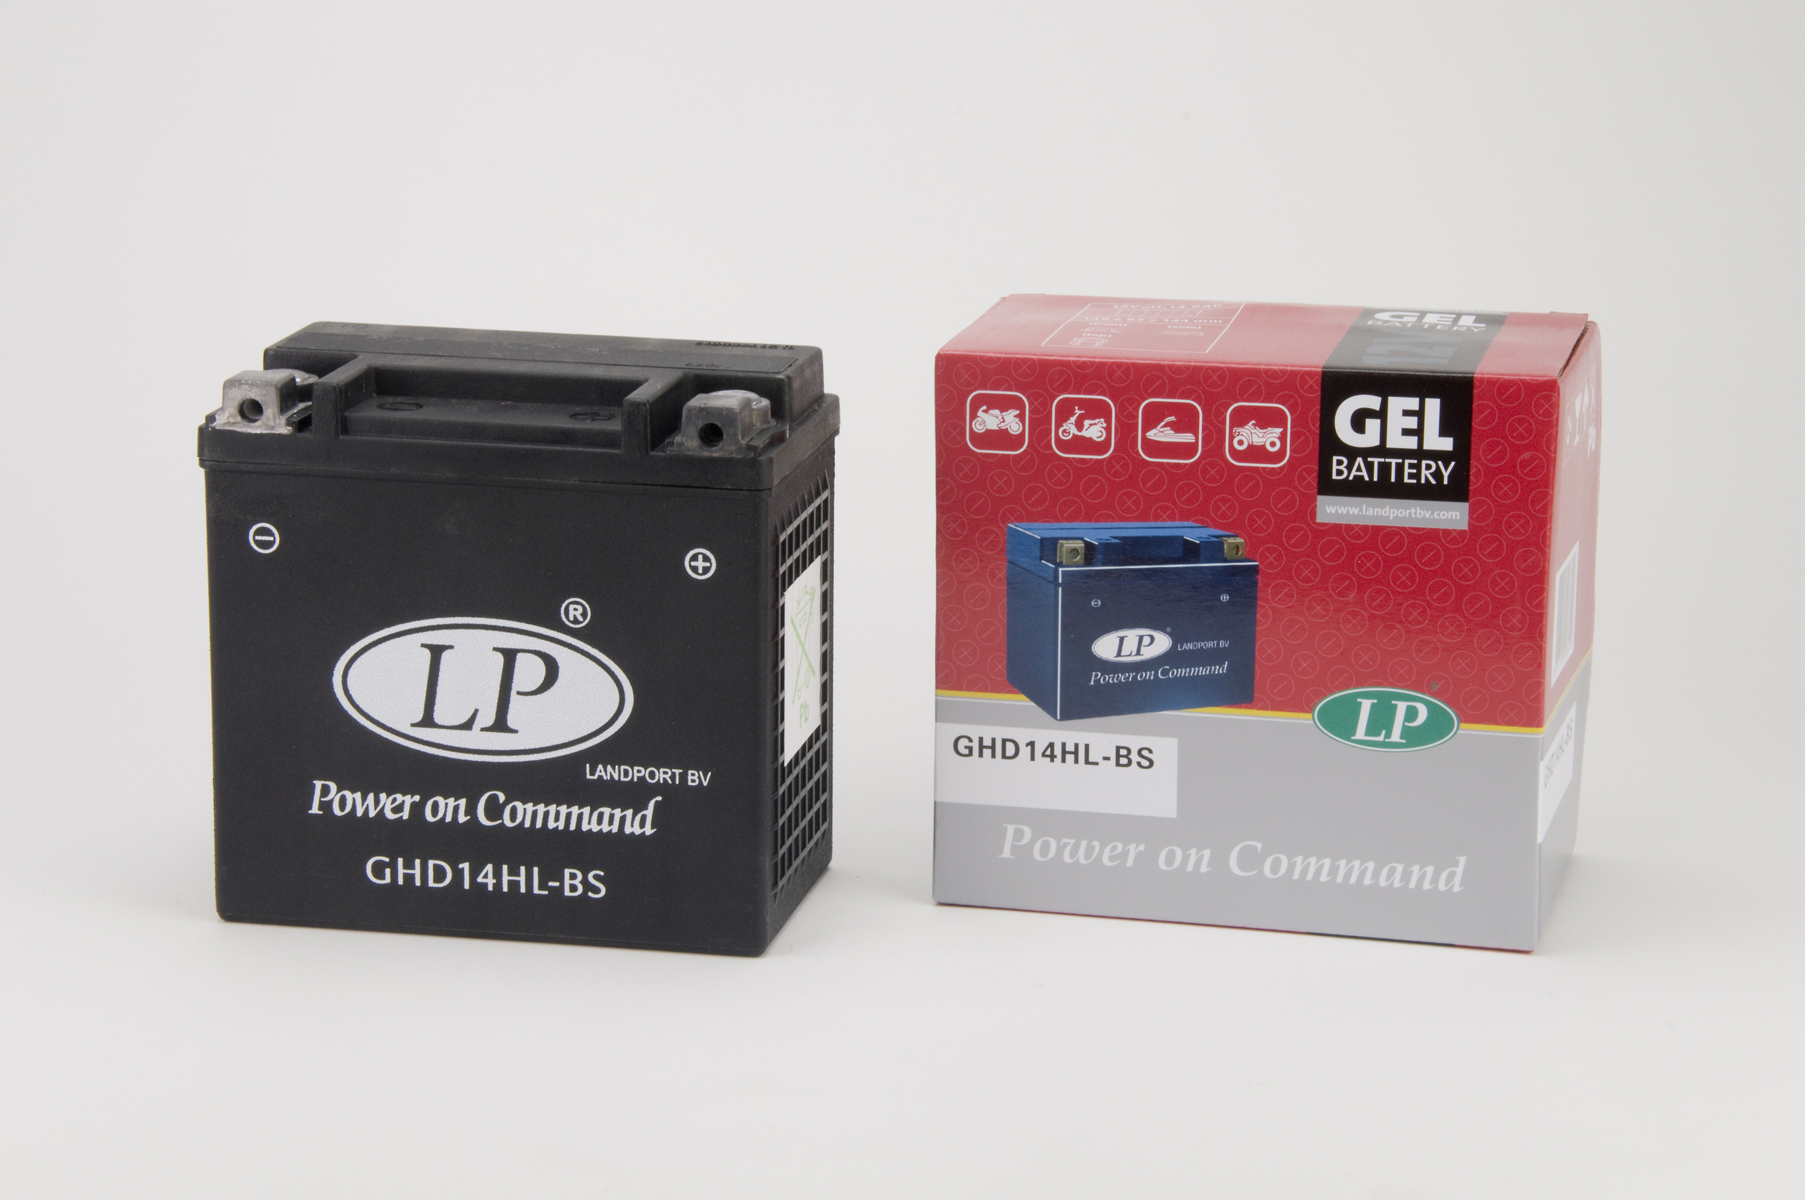 GHD14HL-BS motor accu Gel